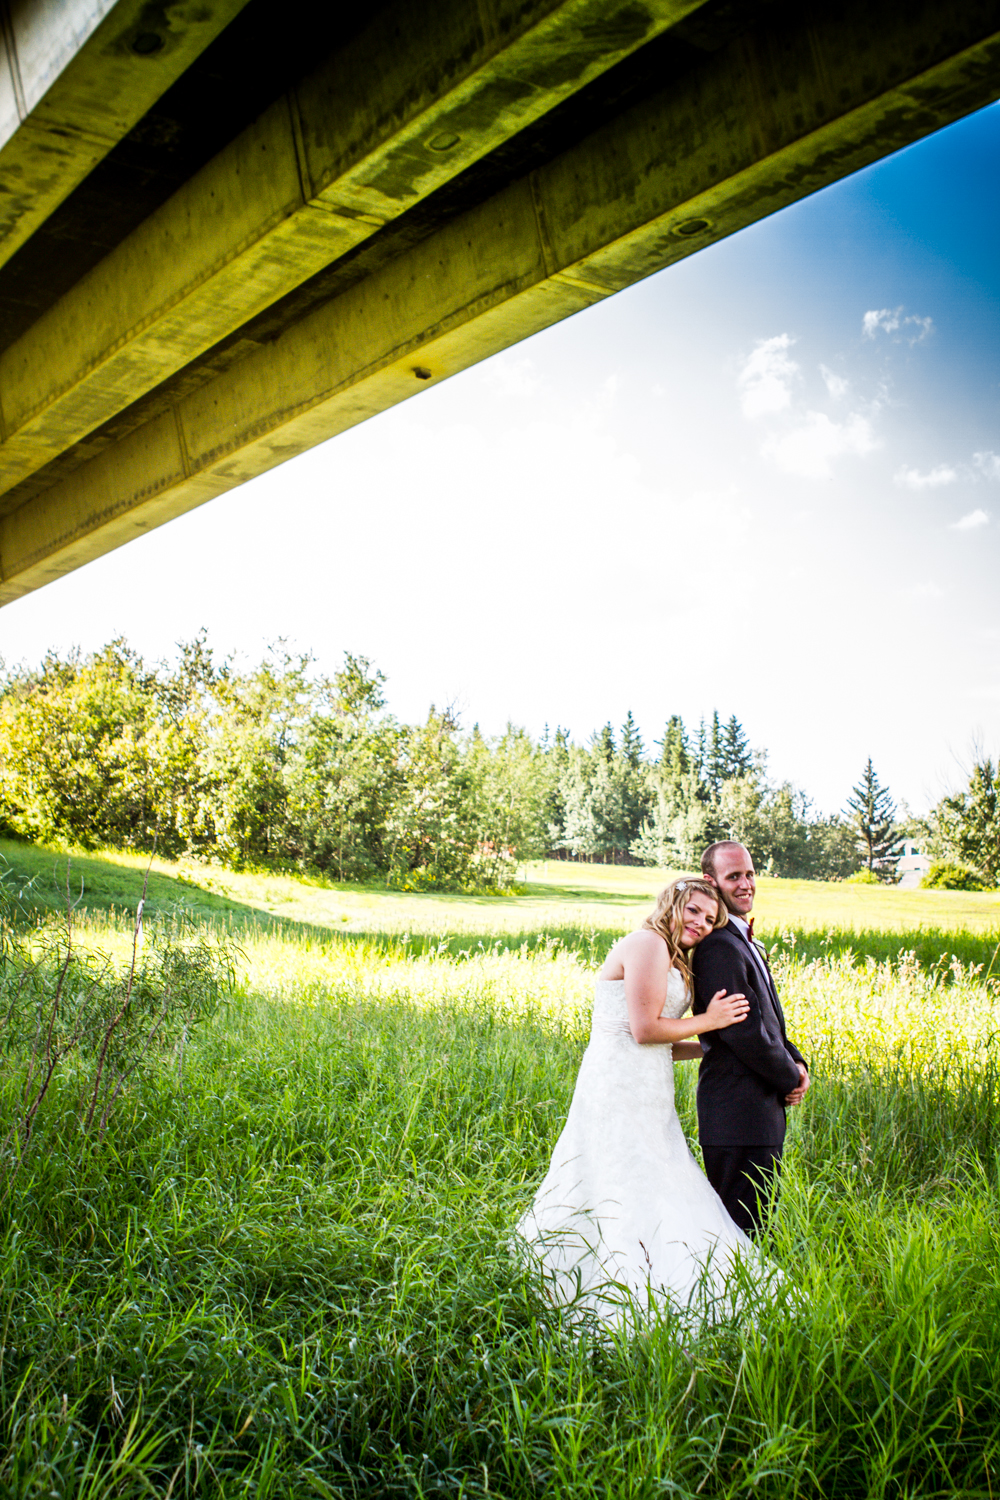 Erica & Tyler - Wedding - 1362.jpg